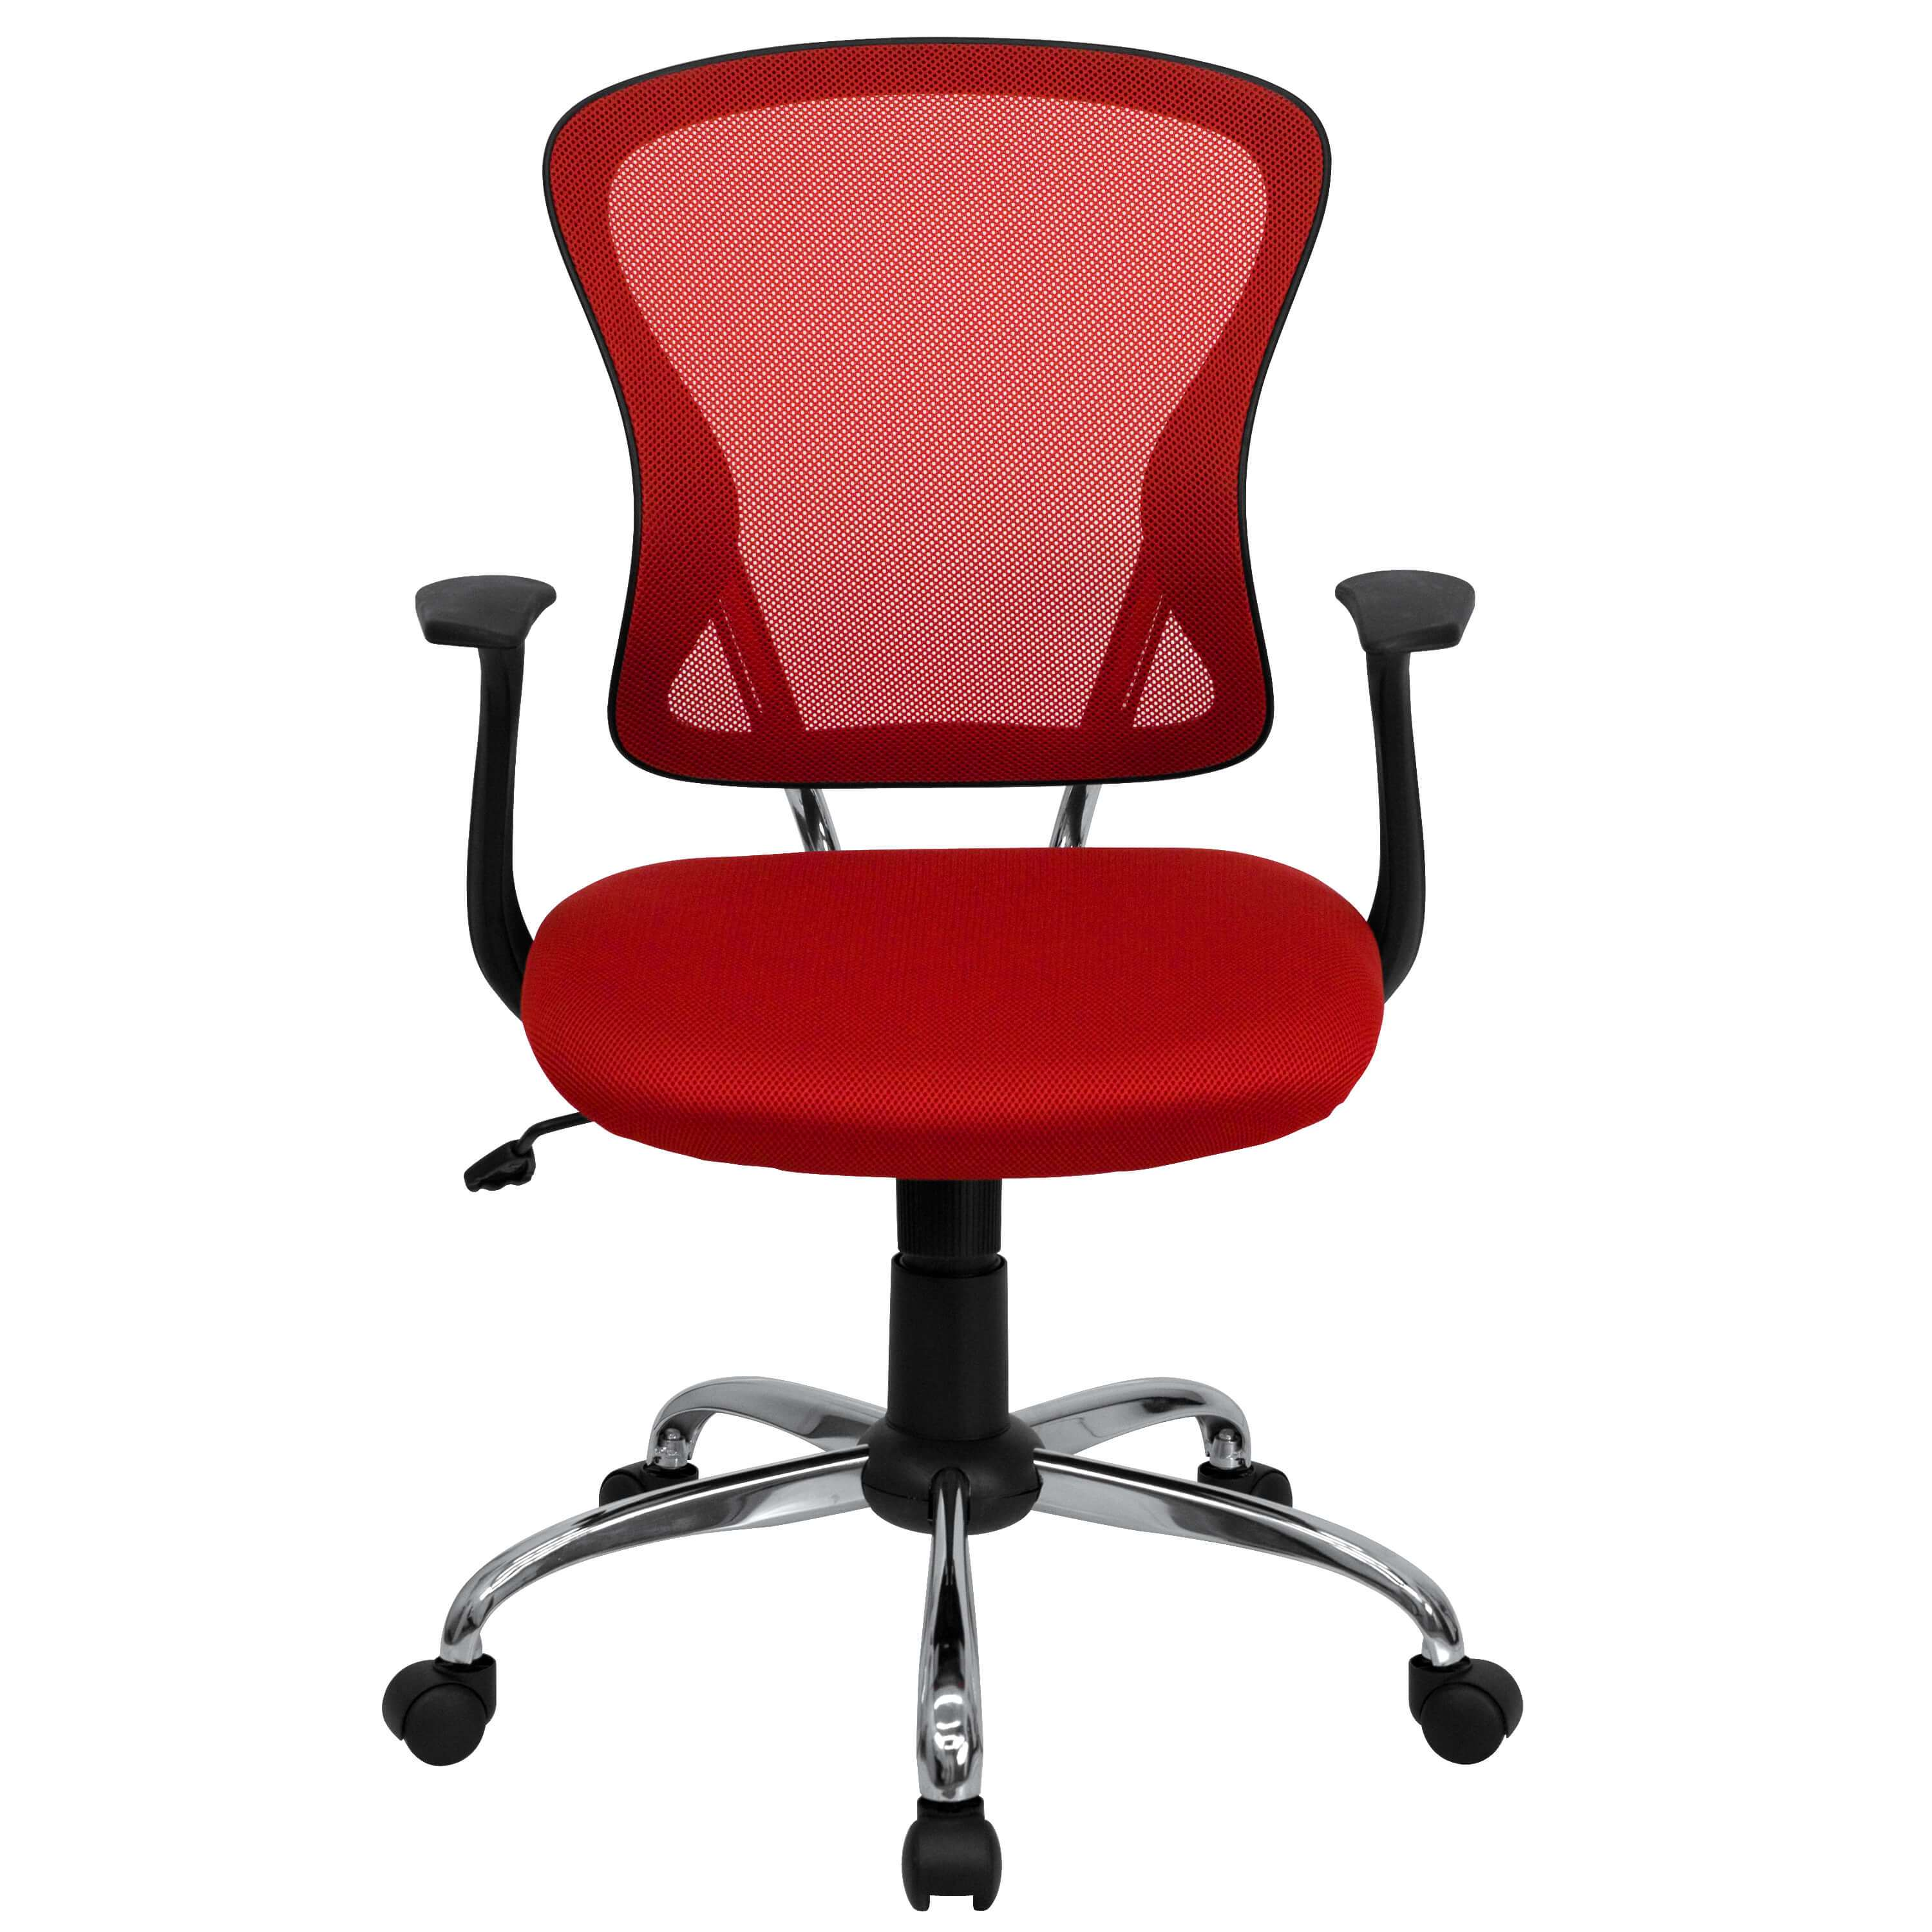 Colorful desk chairs CUB H 8369F RED GG FLA